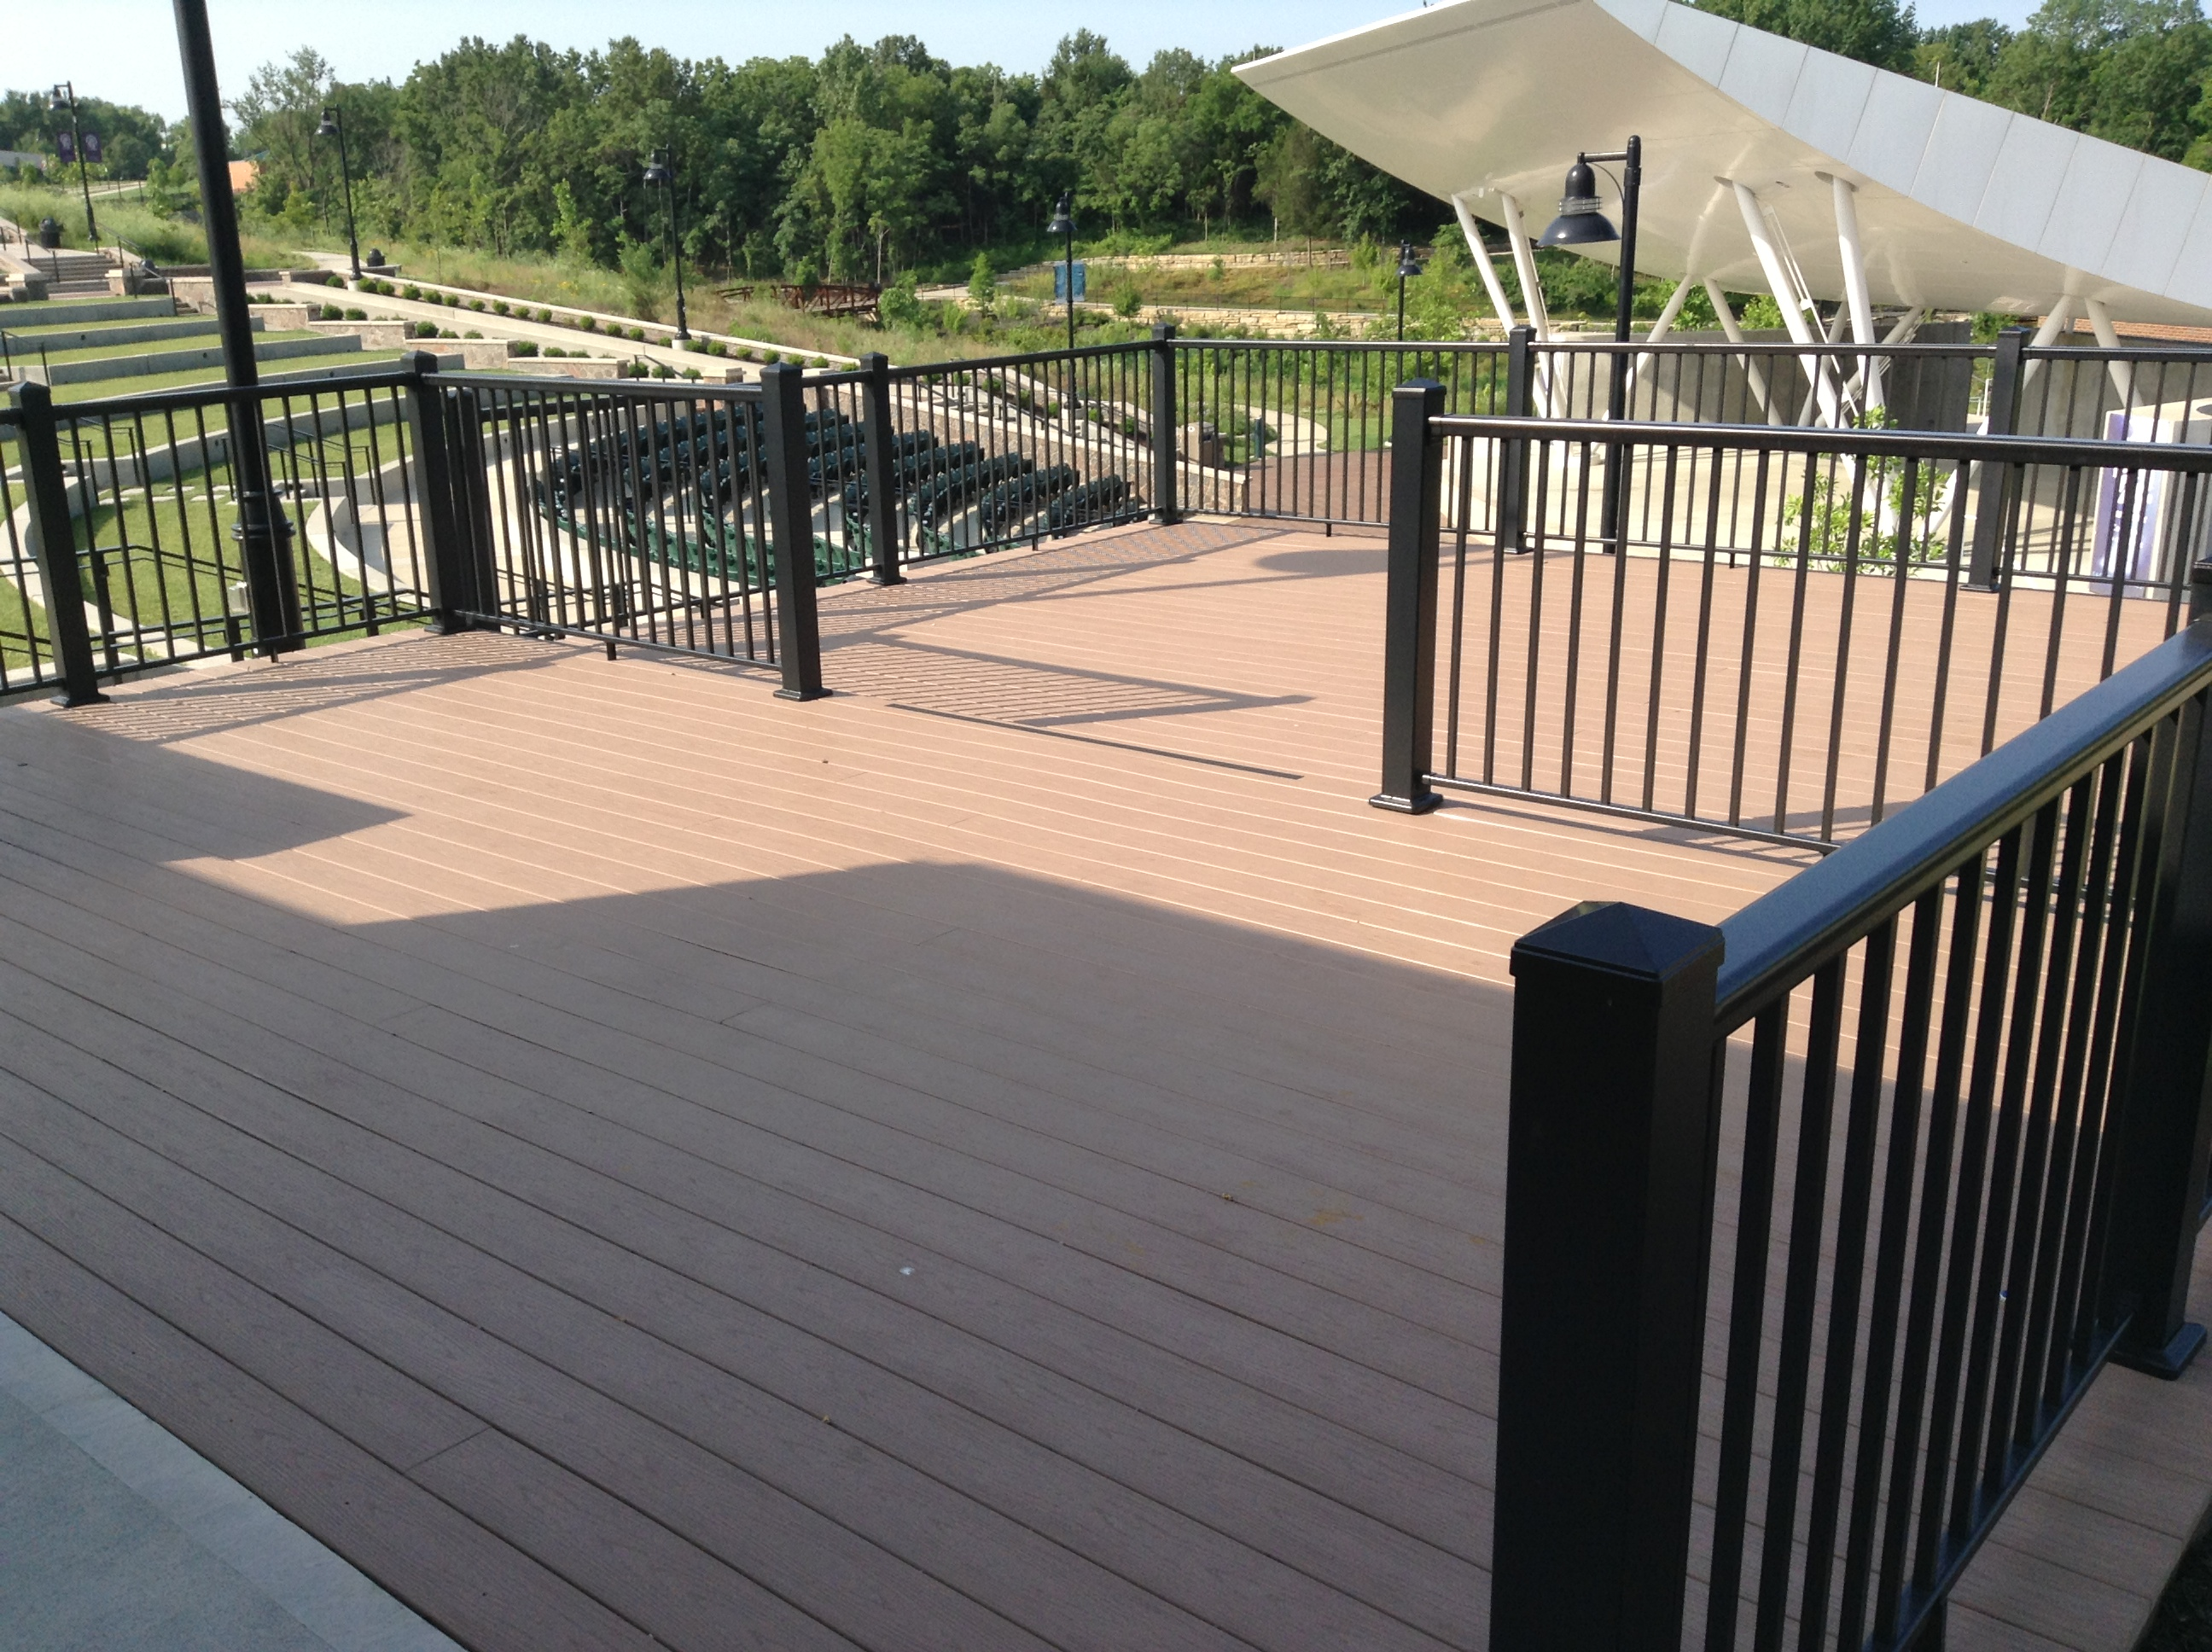 Deck and handrails composite